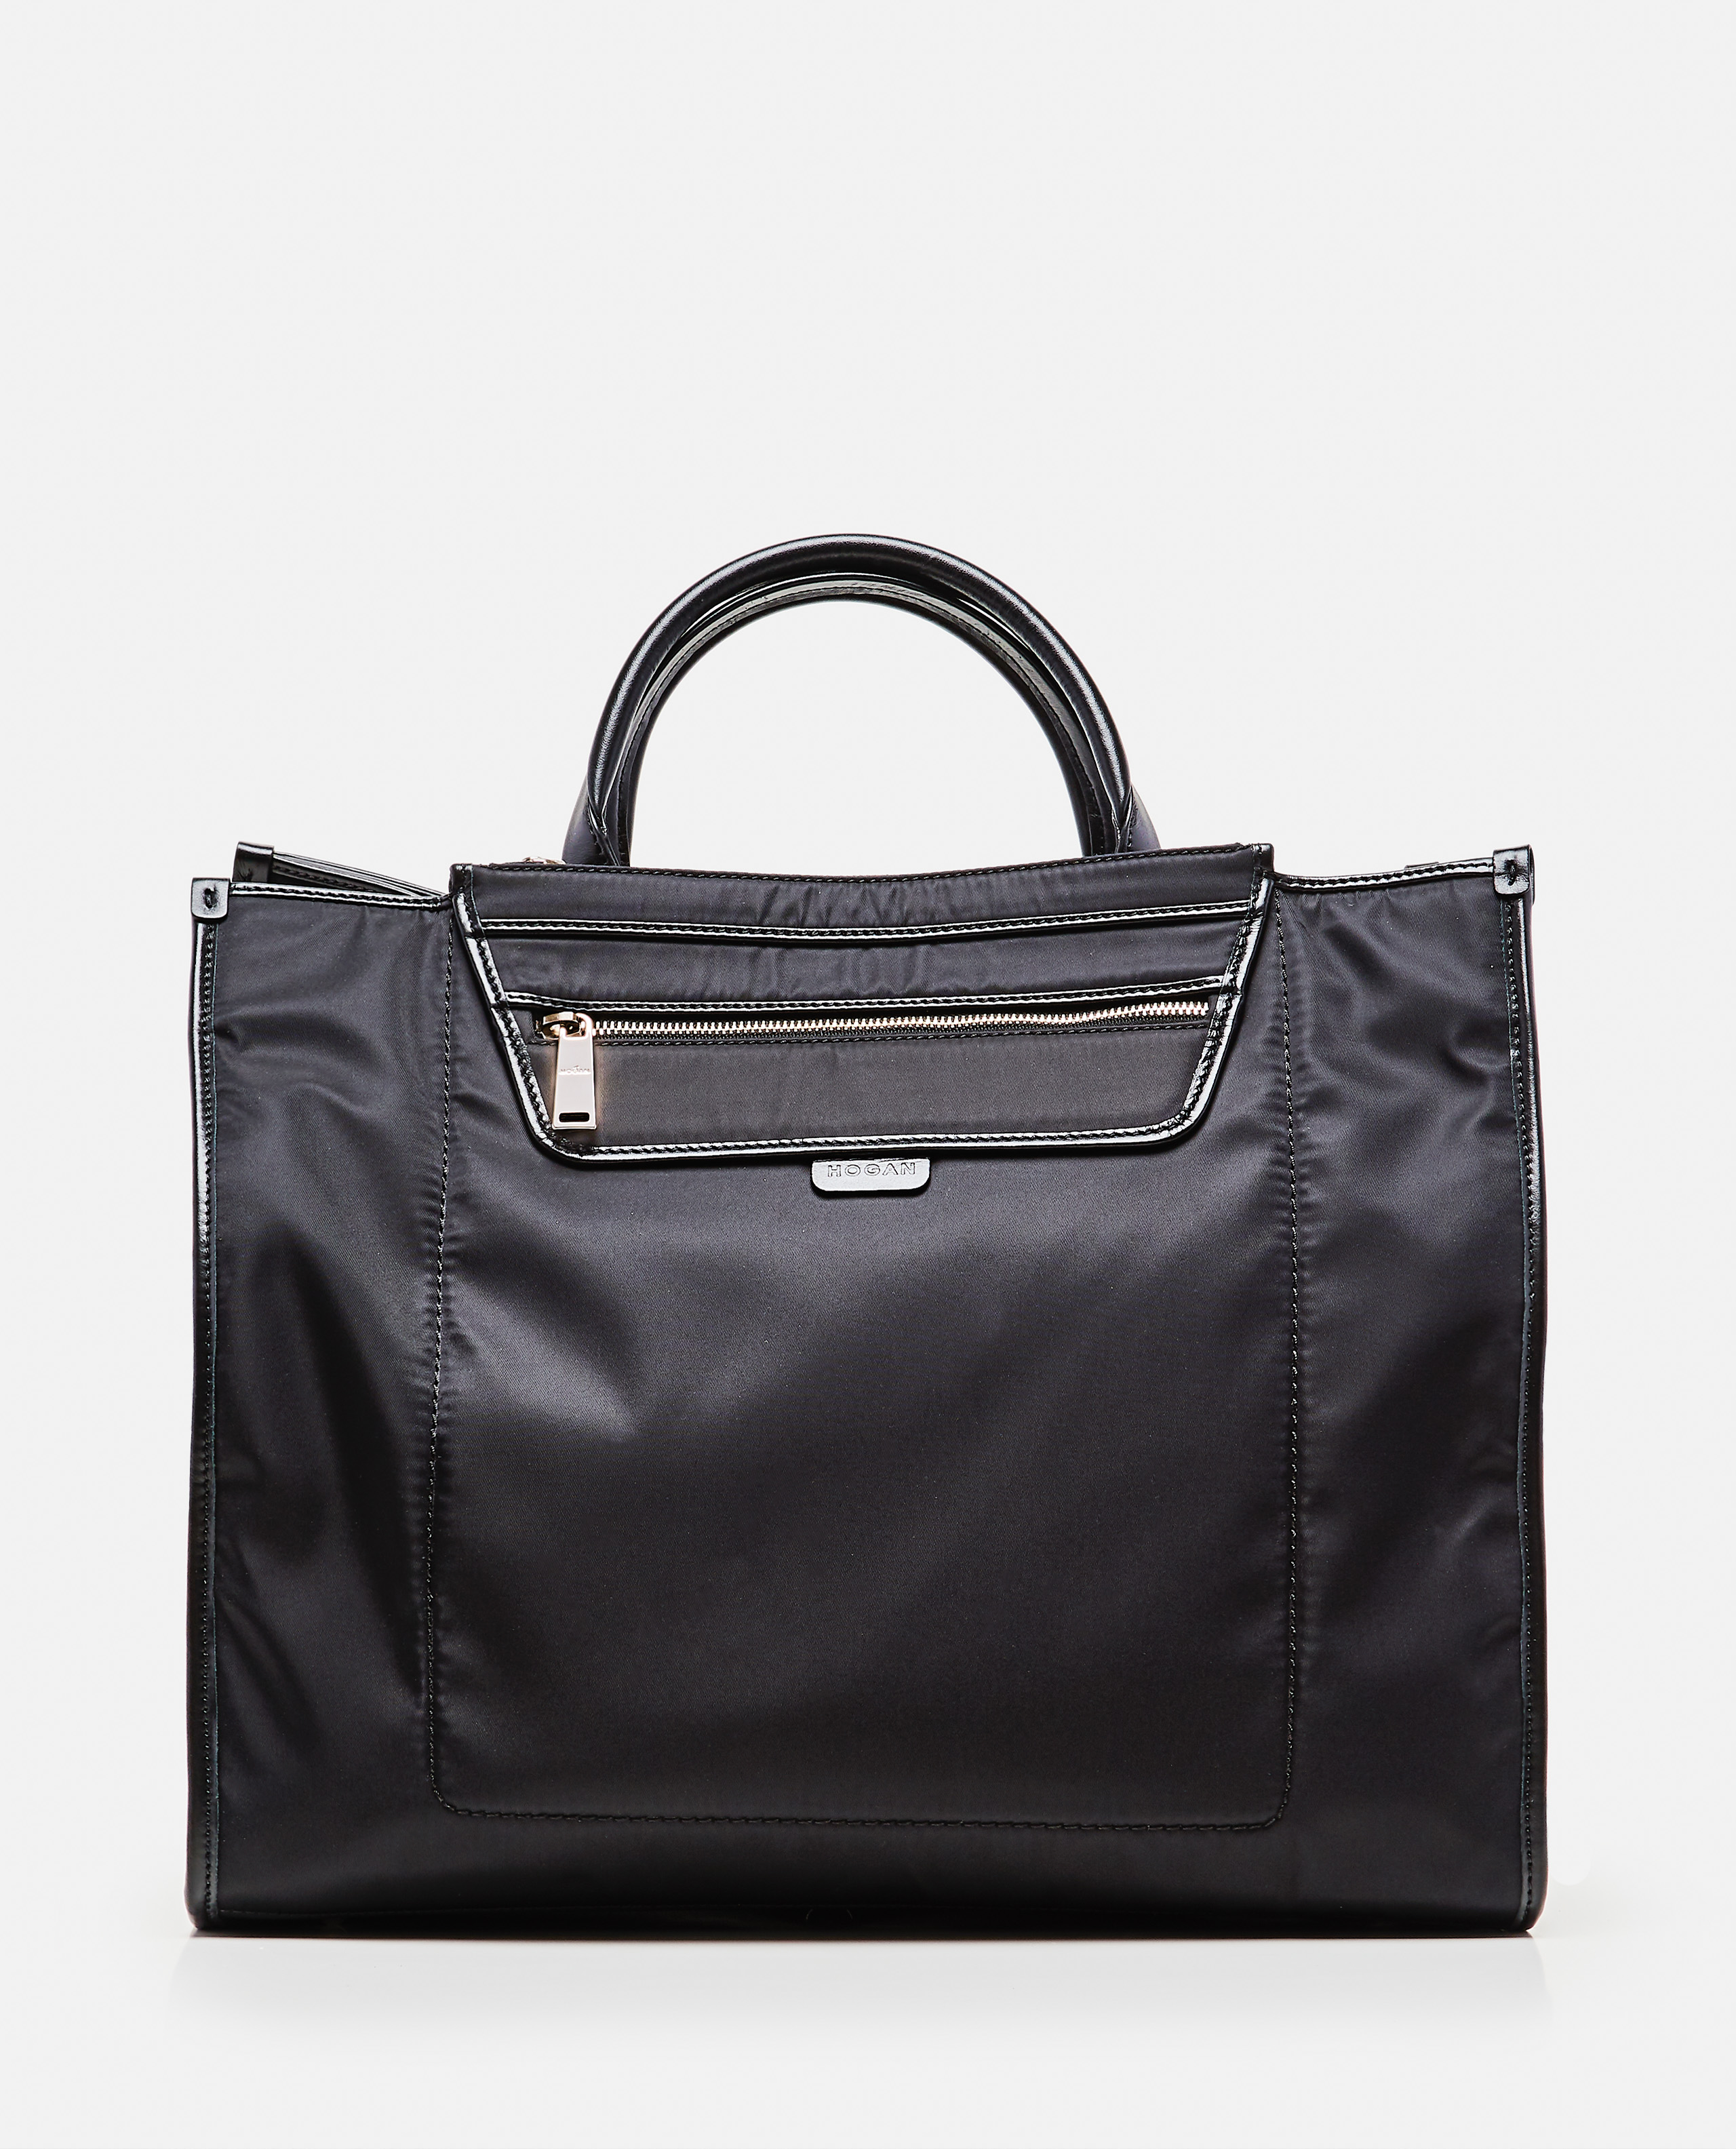 Tote bag with contrasting finishes